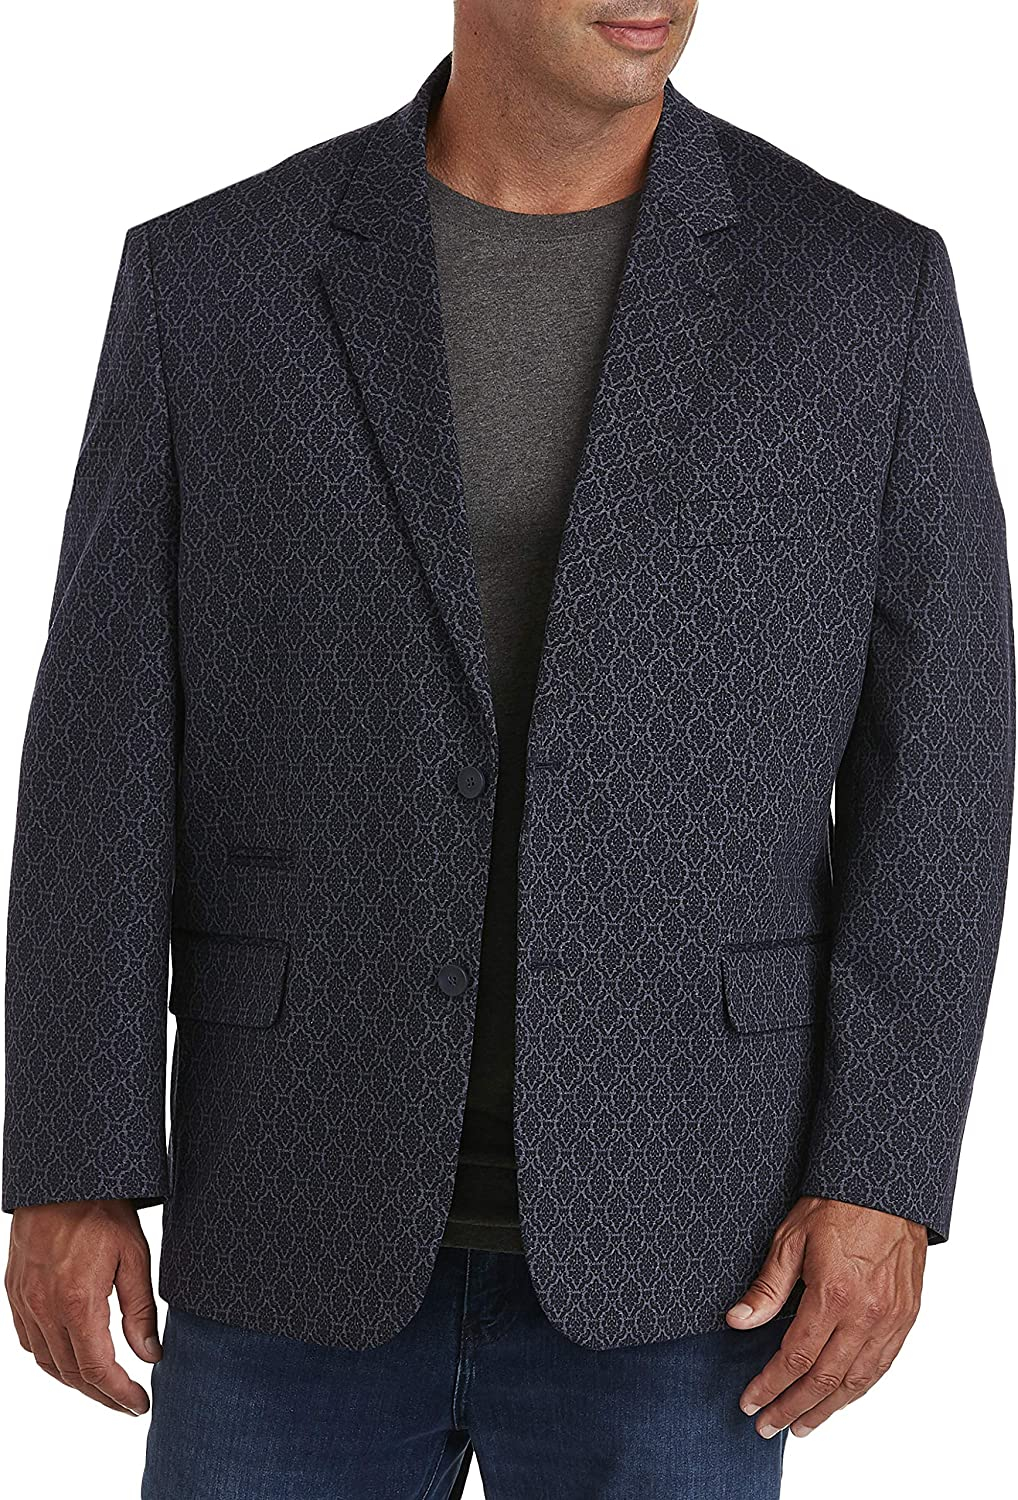 DXL Synrgy Big and Tall Jacket-Relaxer Paisley Sport Coat, Blue